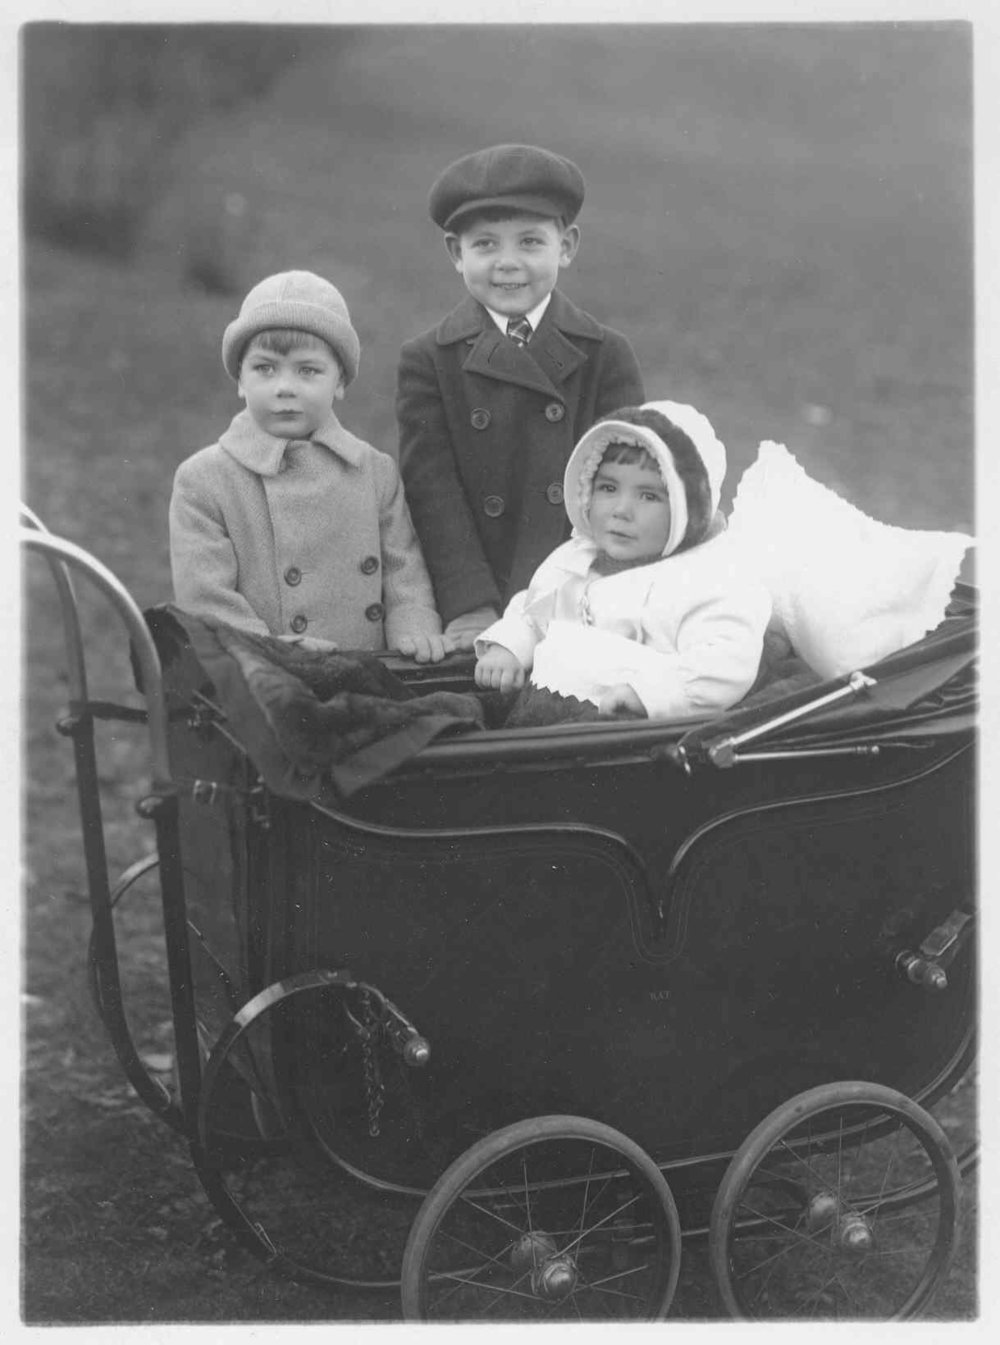 Young Edward flanked by his brother Billy and his sister Barbara, in New York City's Central Park in 1929, just after the onset of The Great Depression.